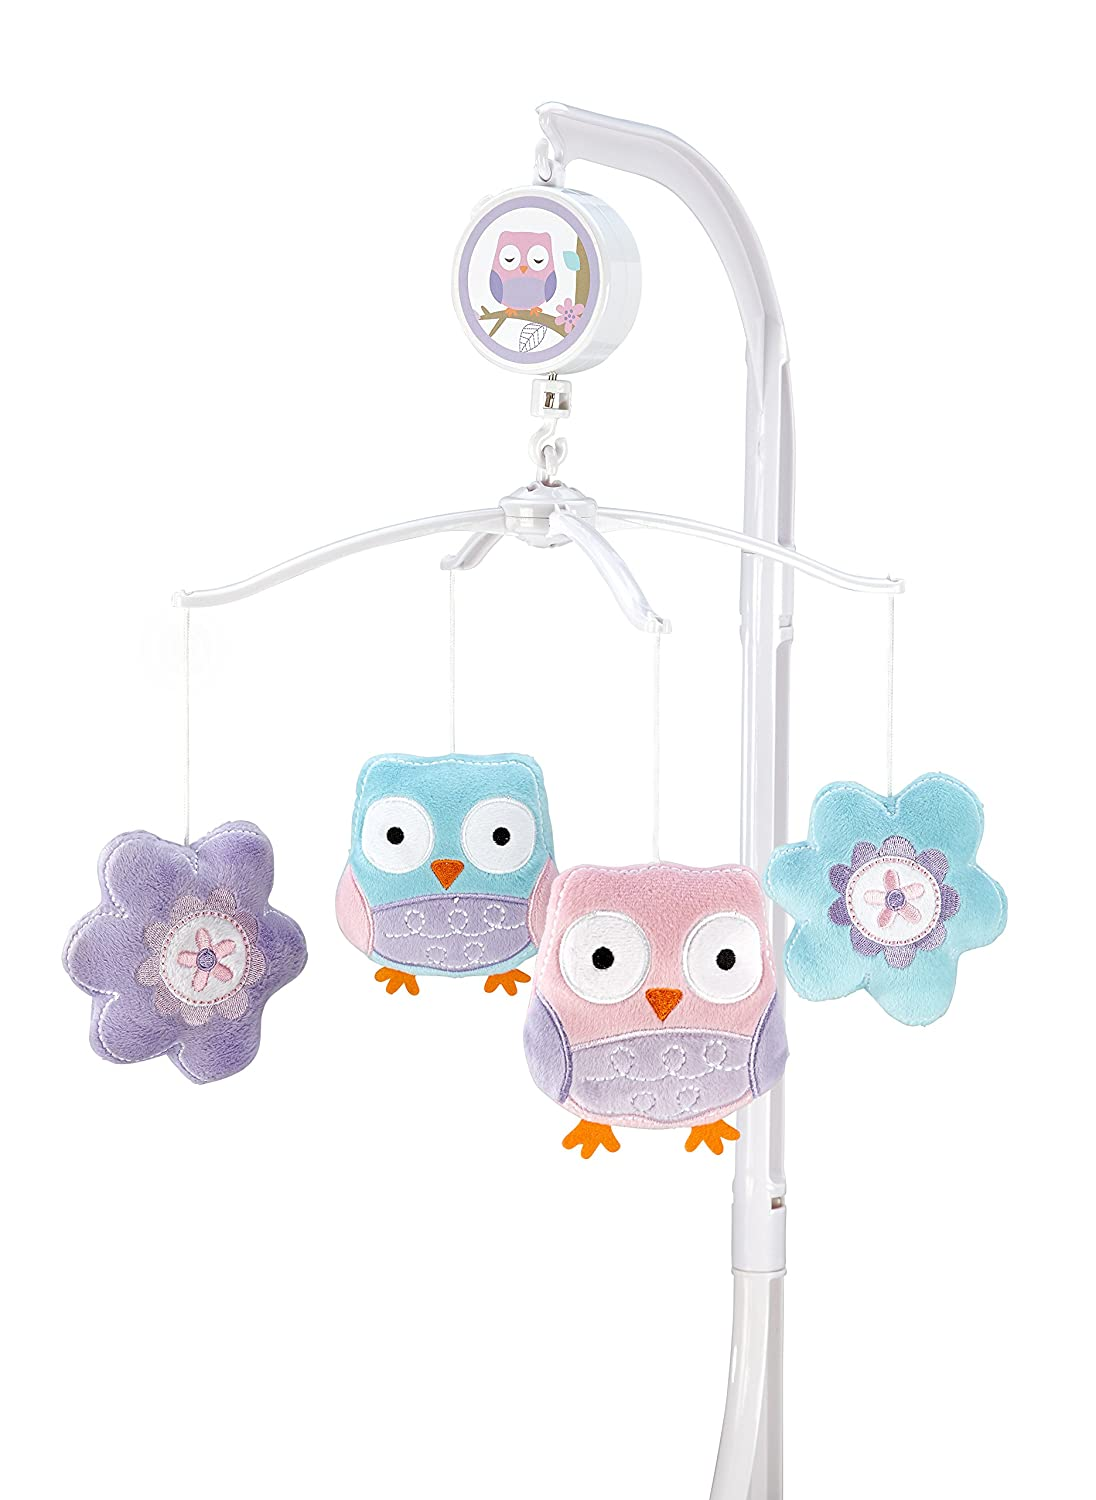 Little Love by NoJo Adorable Orchard Musical Mobile, Multi-Colored Crown Craft Infant Products 4501079